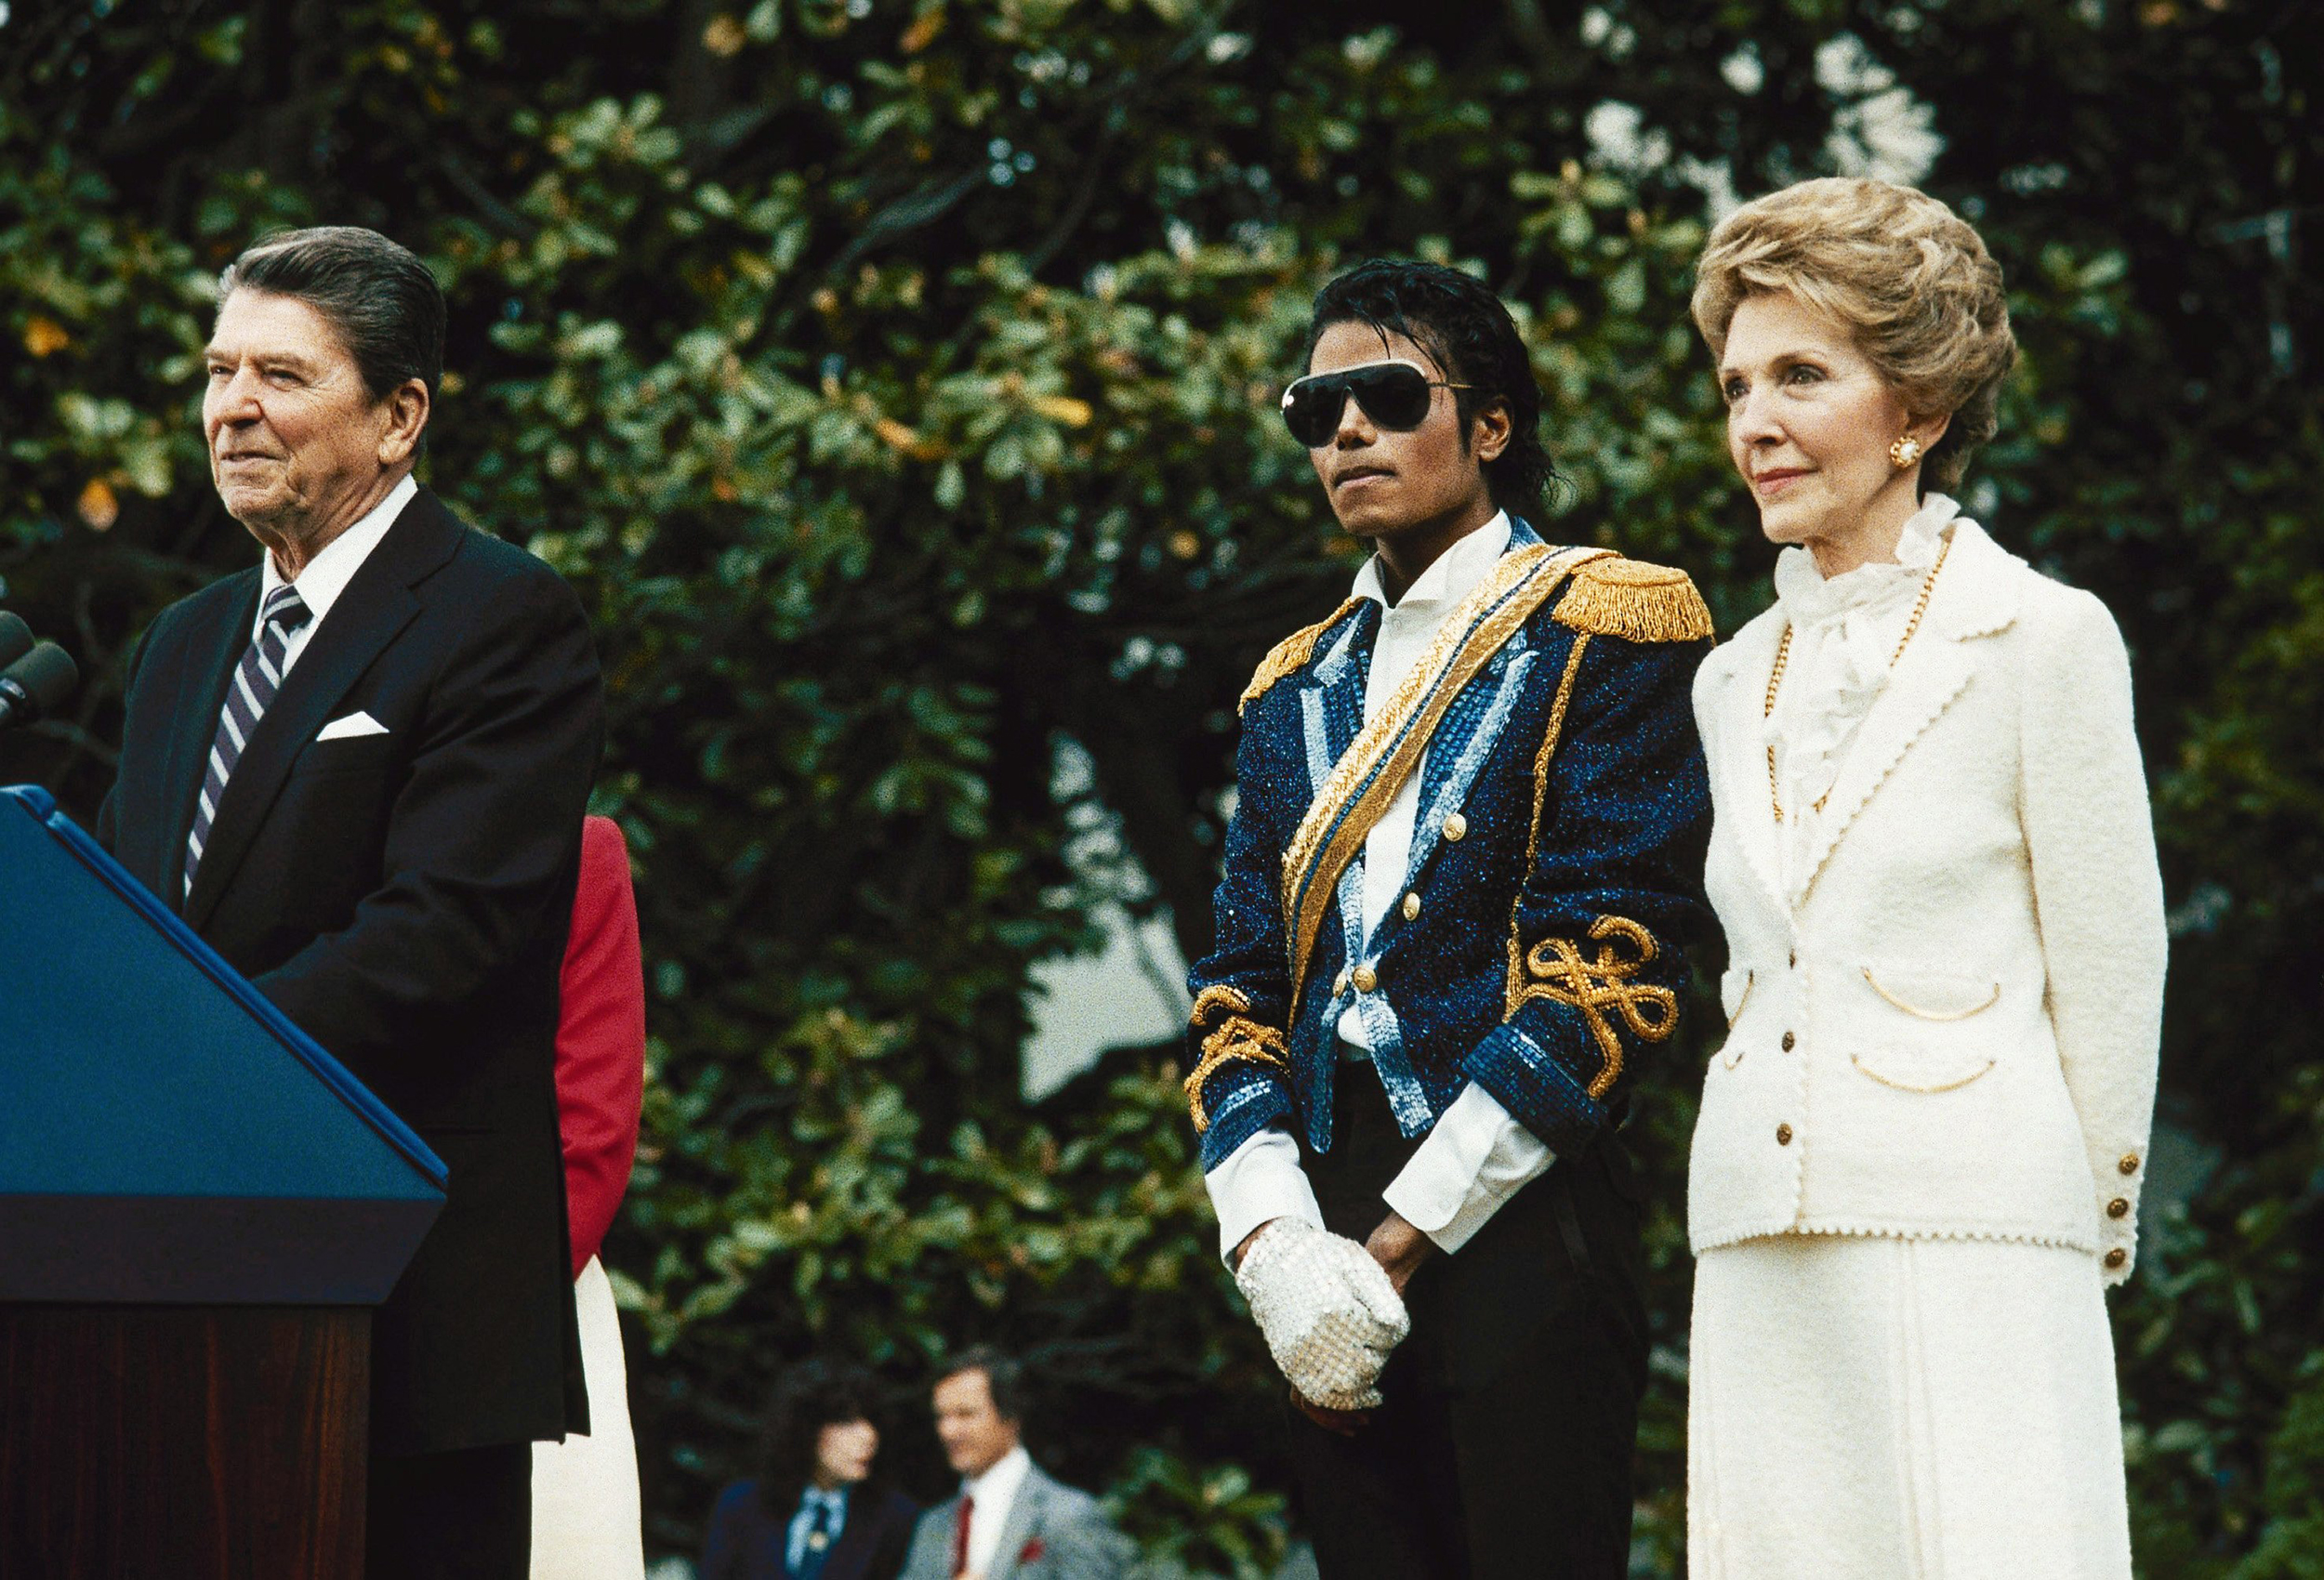 Michael Jackson stands with former President Ronald Reagan and first lady Nancy Reagan on the south lawn of the White House prior to receiving an award from the president for his contribution to the drunk driving awareness program in Washington, D.C. on May 14, 1984.